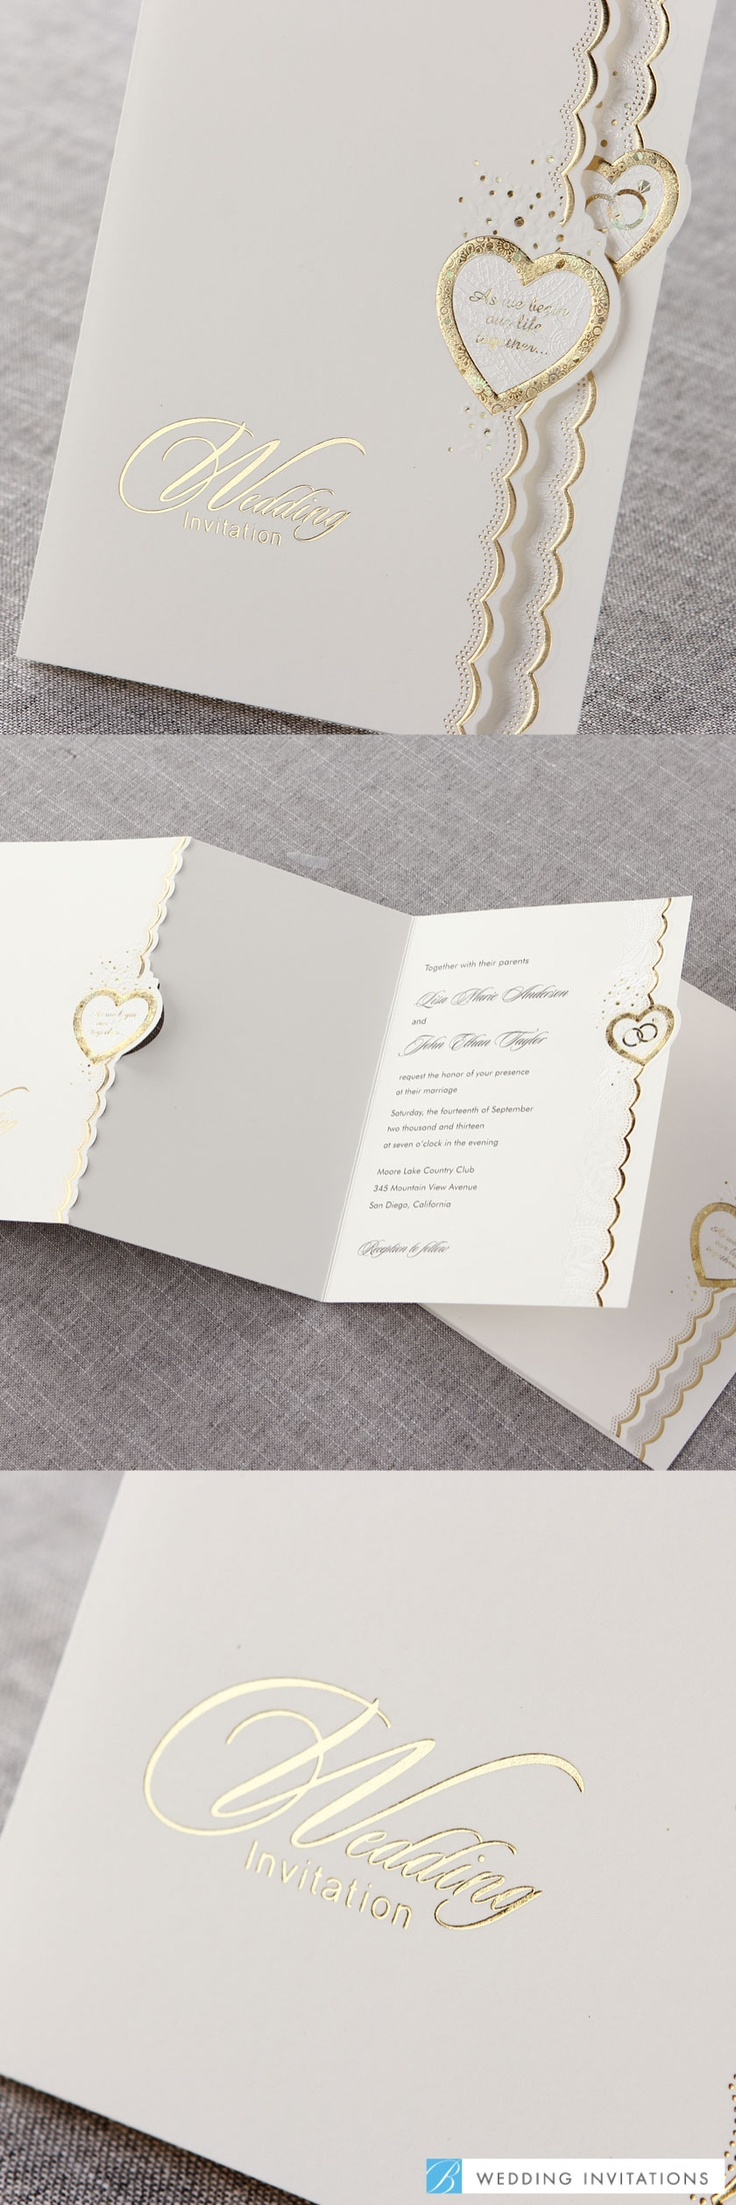 10 Best Foil Pressed Wedding Invitations Images On Pinterest